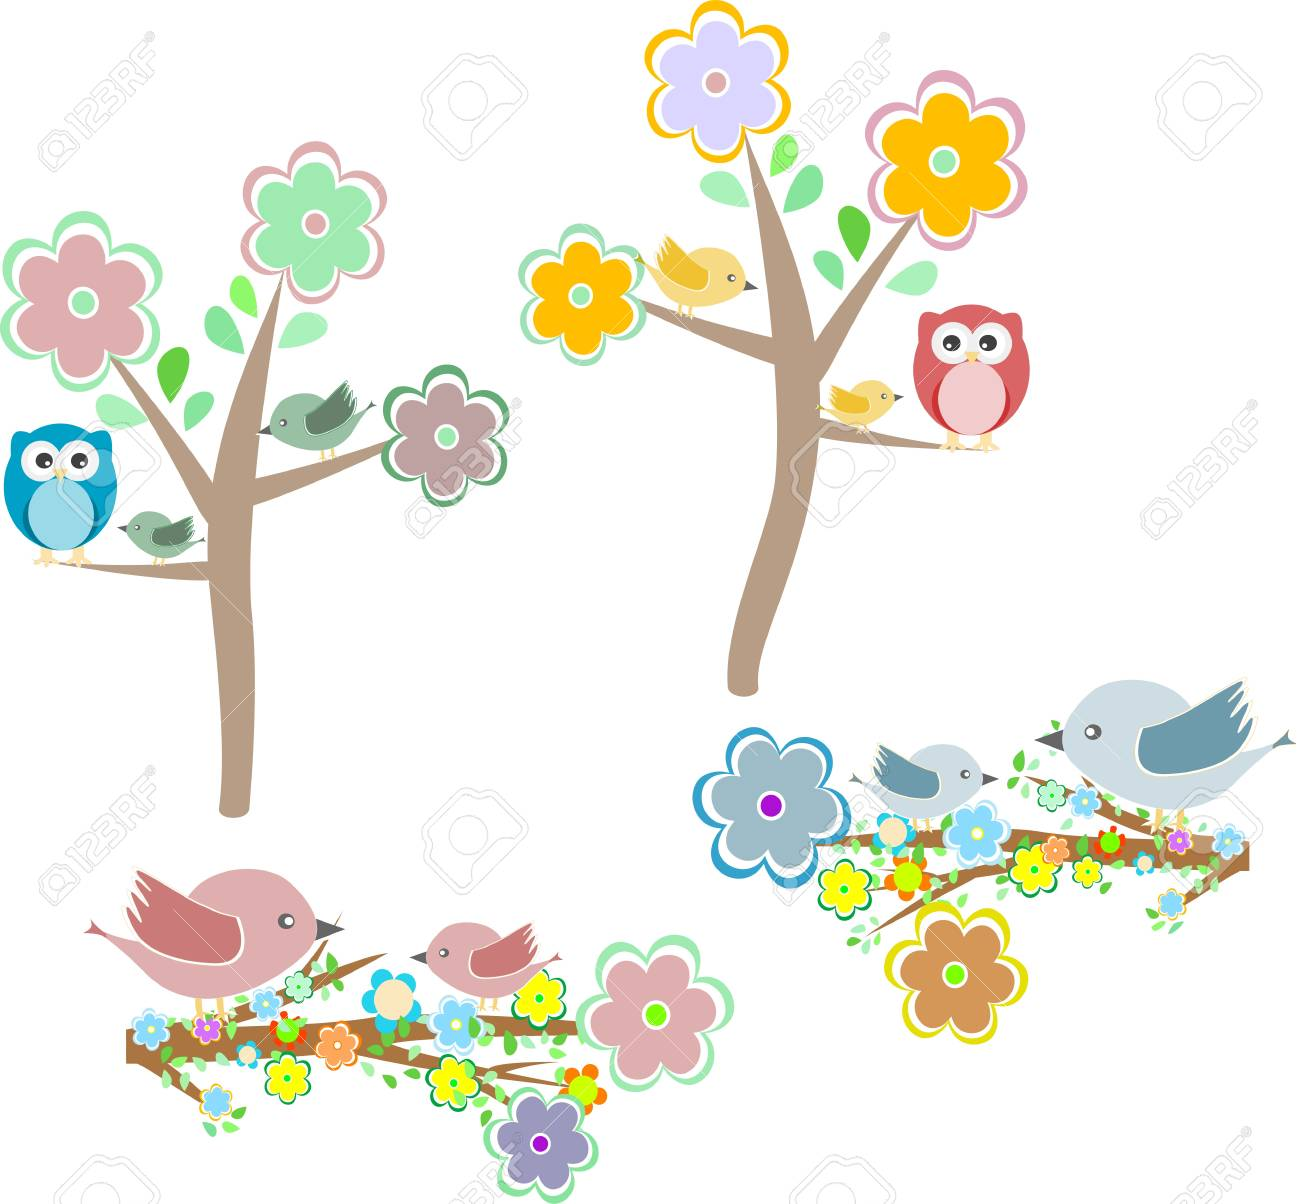 Set of autumn nature elements: owls and birds on branches and oak tree Stock Photo - 20006724